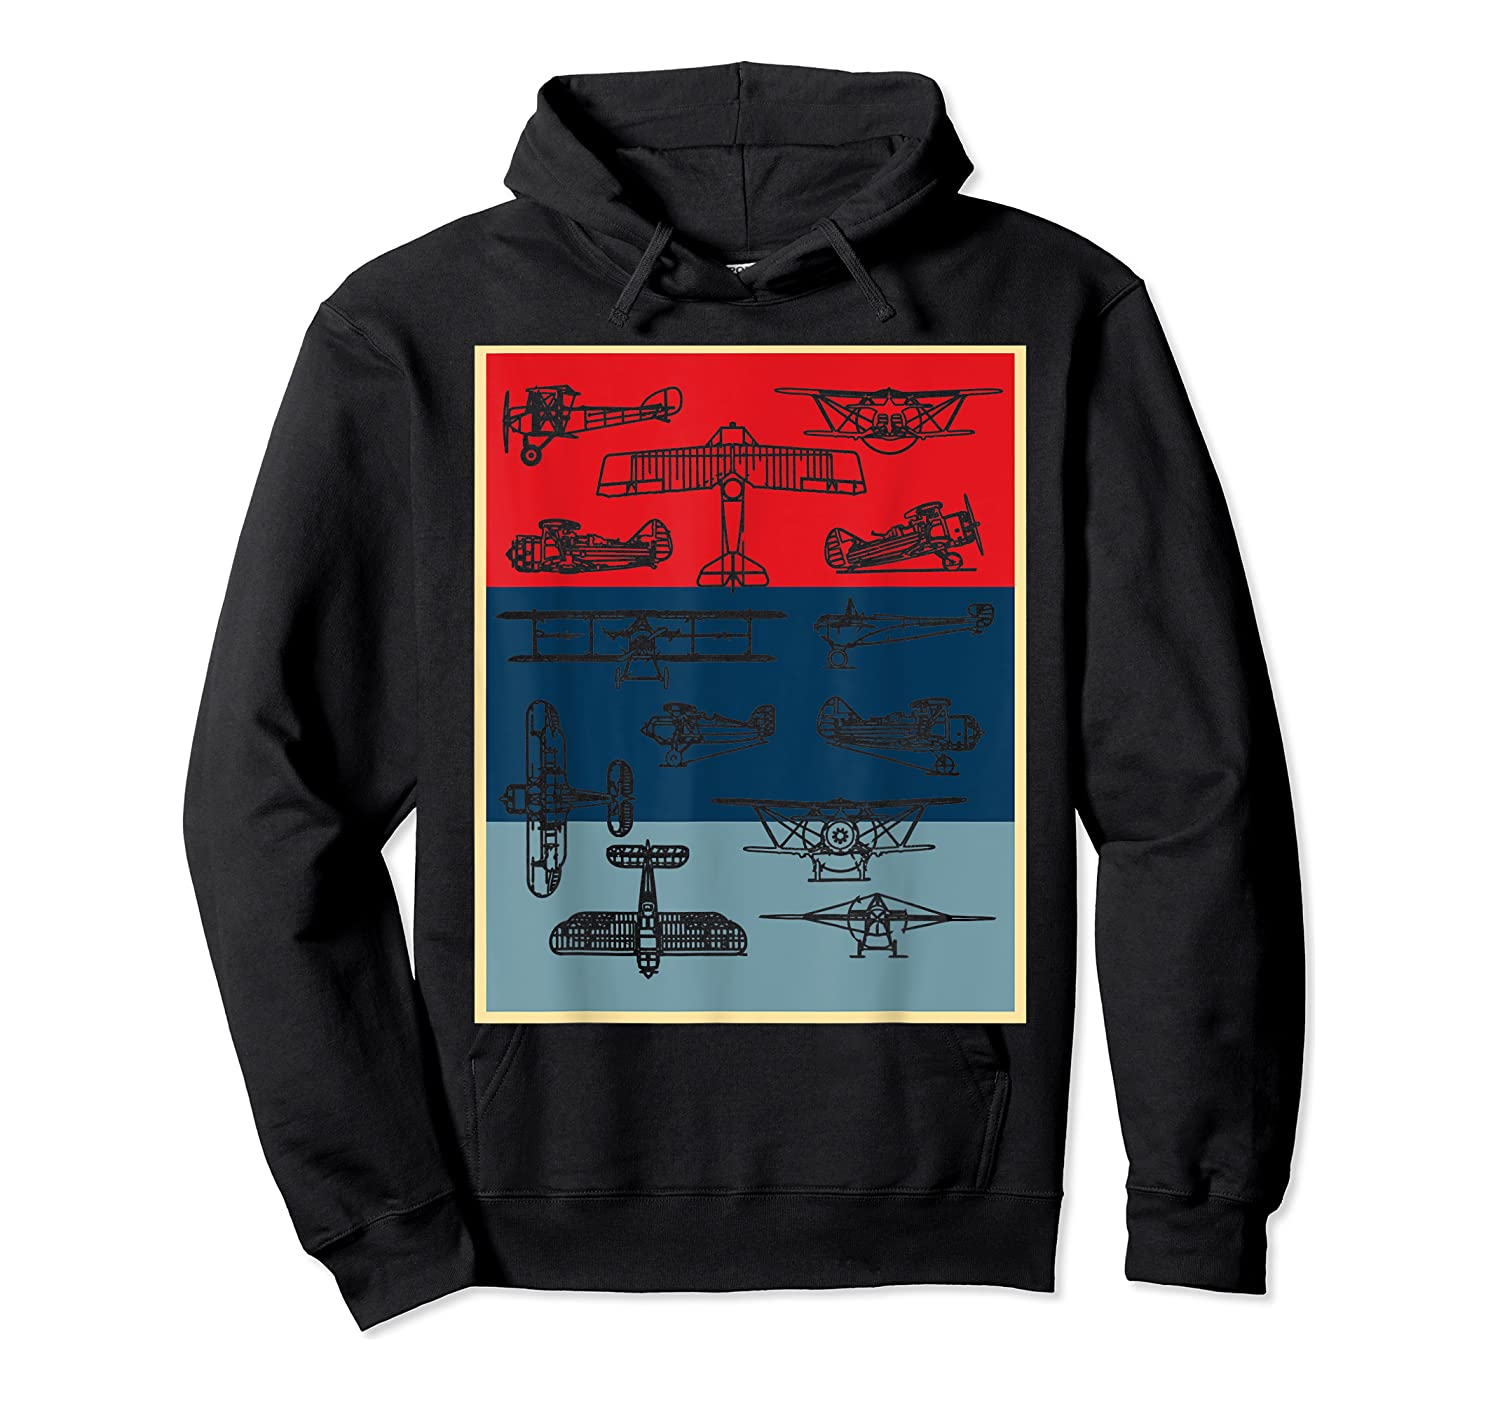 Aneisha Vintage Airplane Gift For Pilot Aviation Students Shirts Unisex Pullover Hoodie